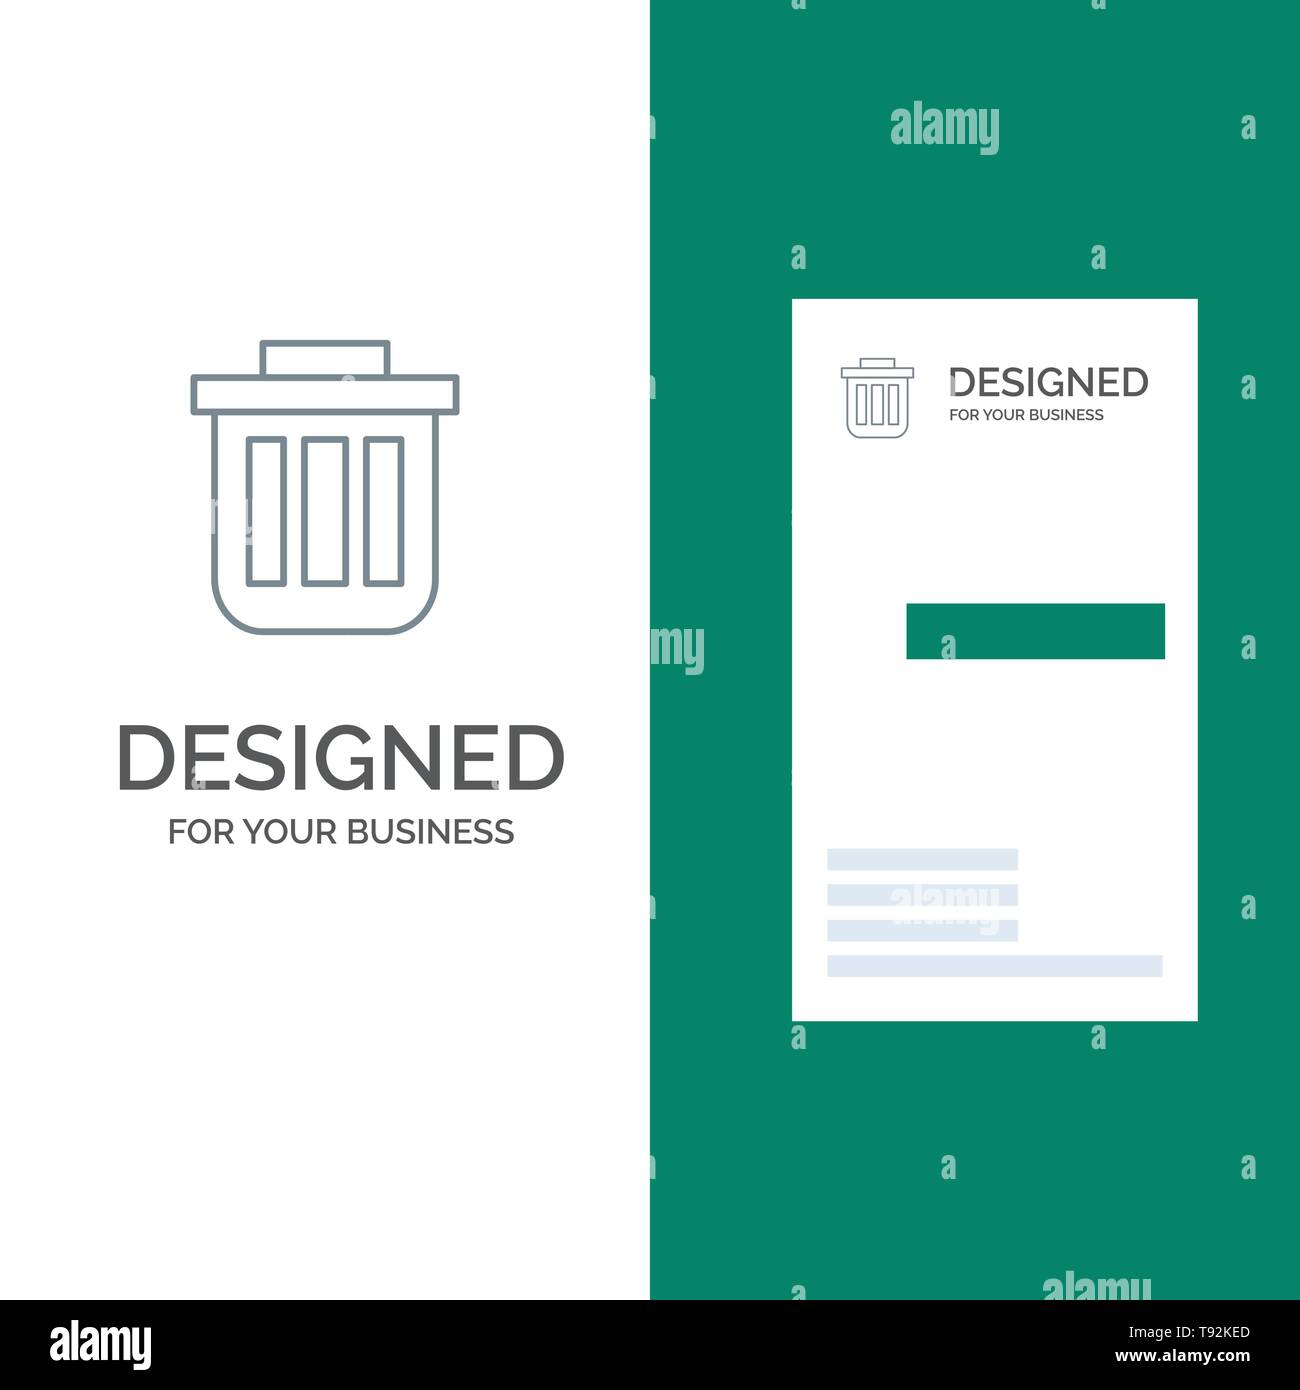 Trash, Basket, Bin, Can, Container, Dustbin, Office Grey Logo Design and Business Card Template - Stock Image